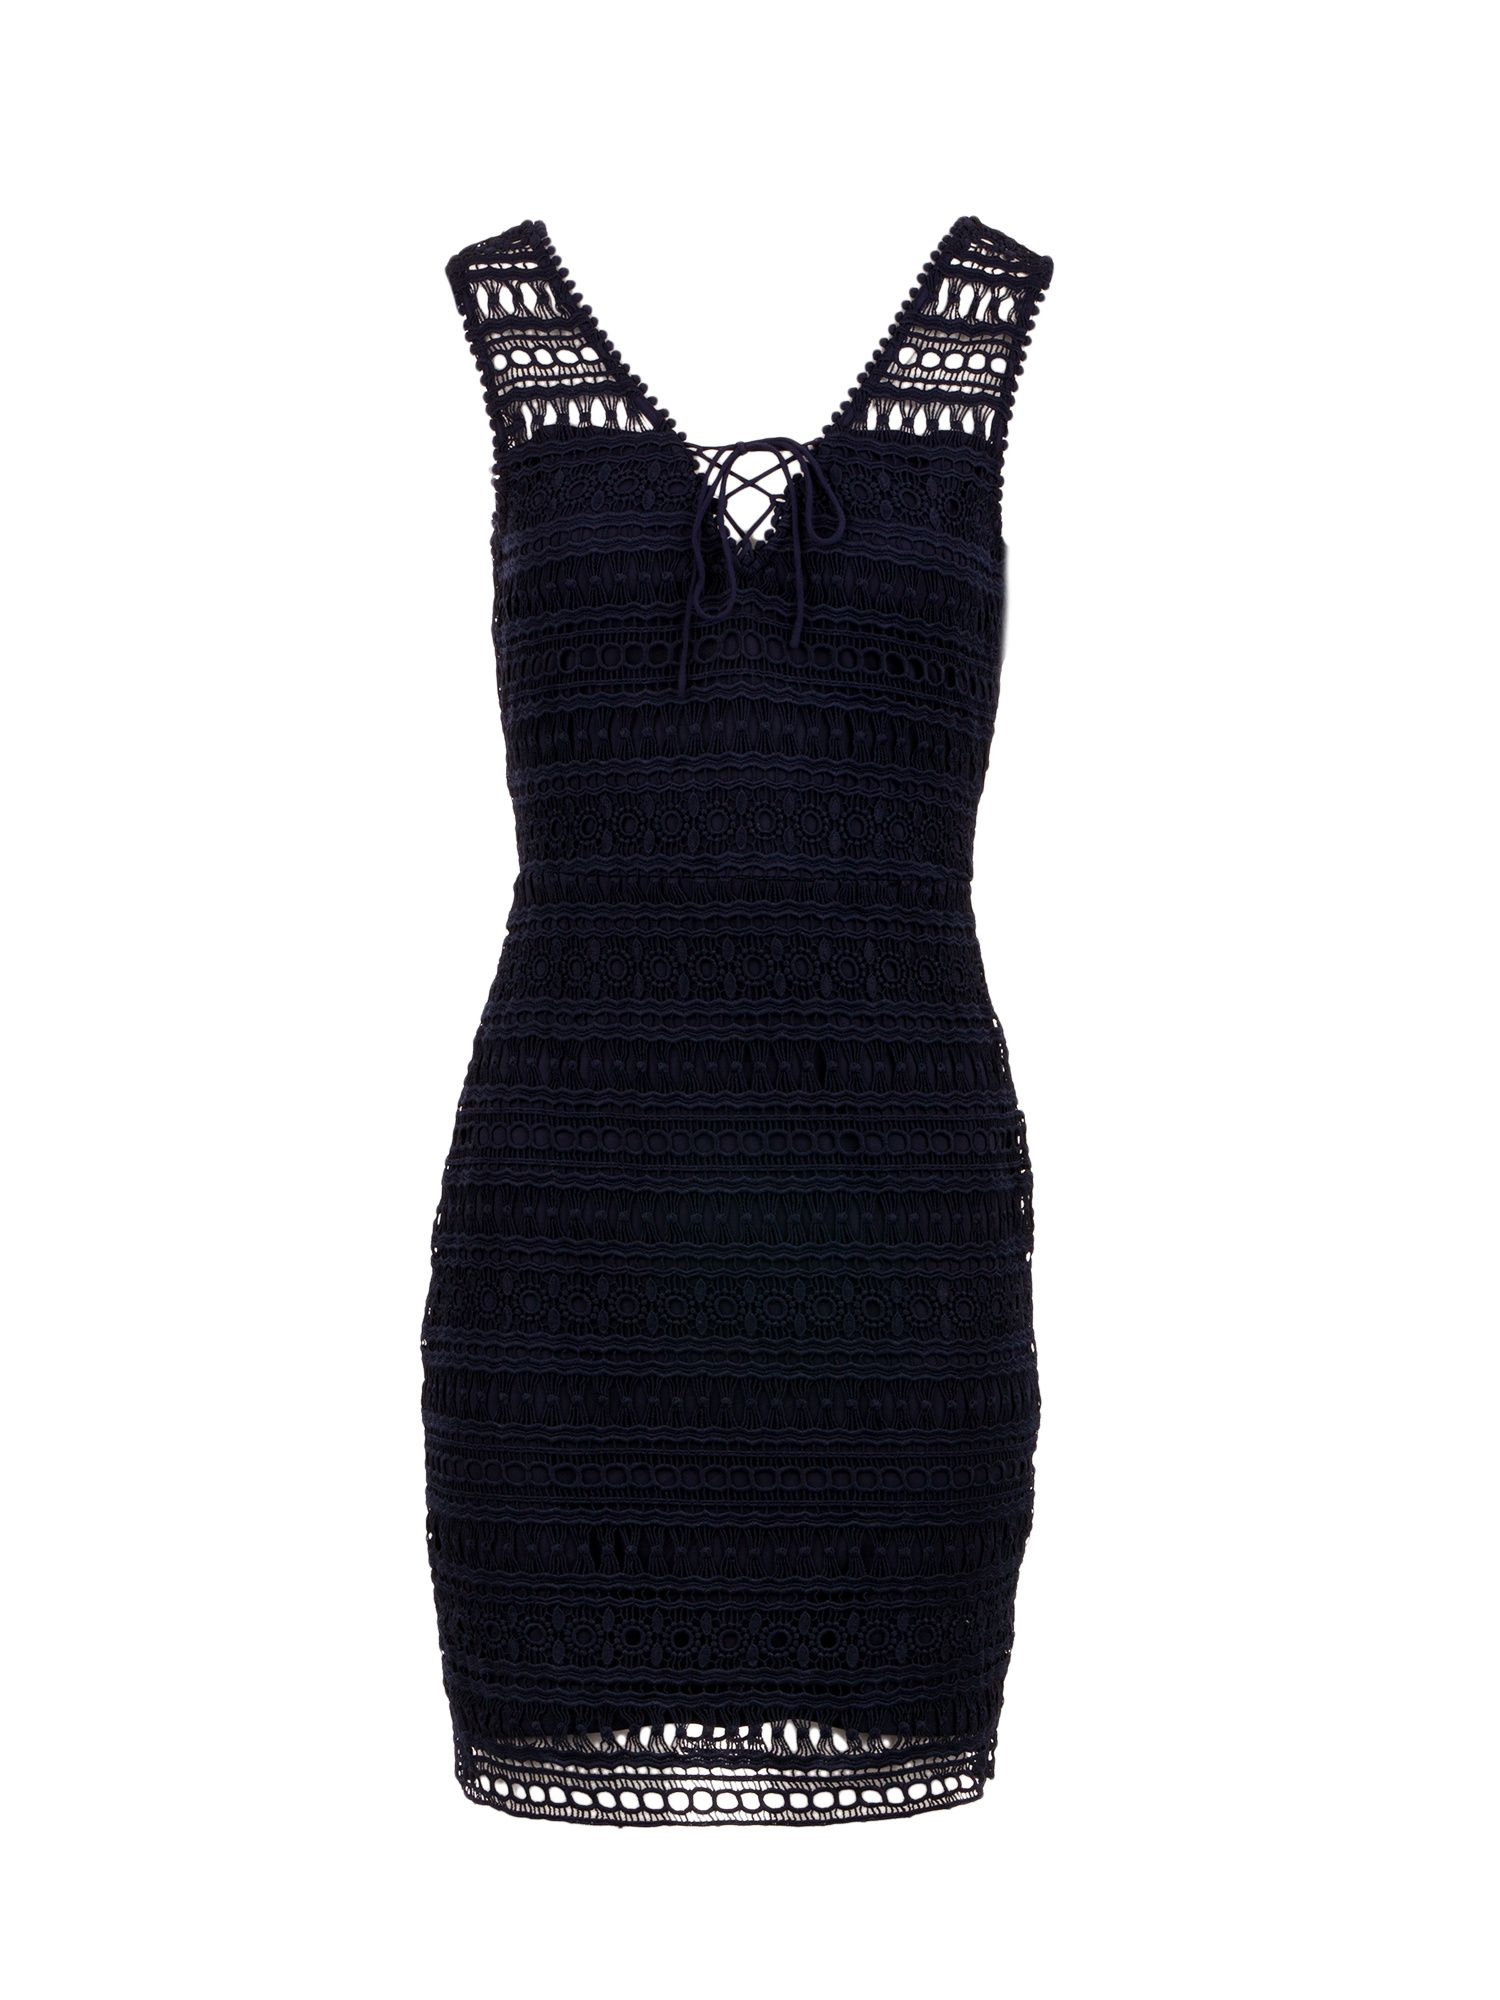 Morgan Lace Up Crochet Knit Dress, Blue